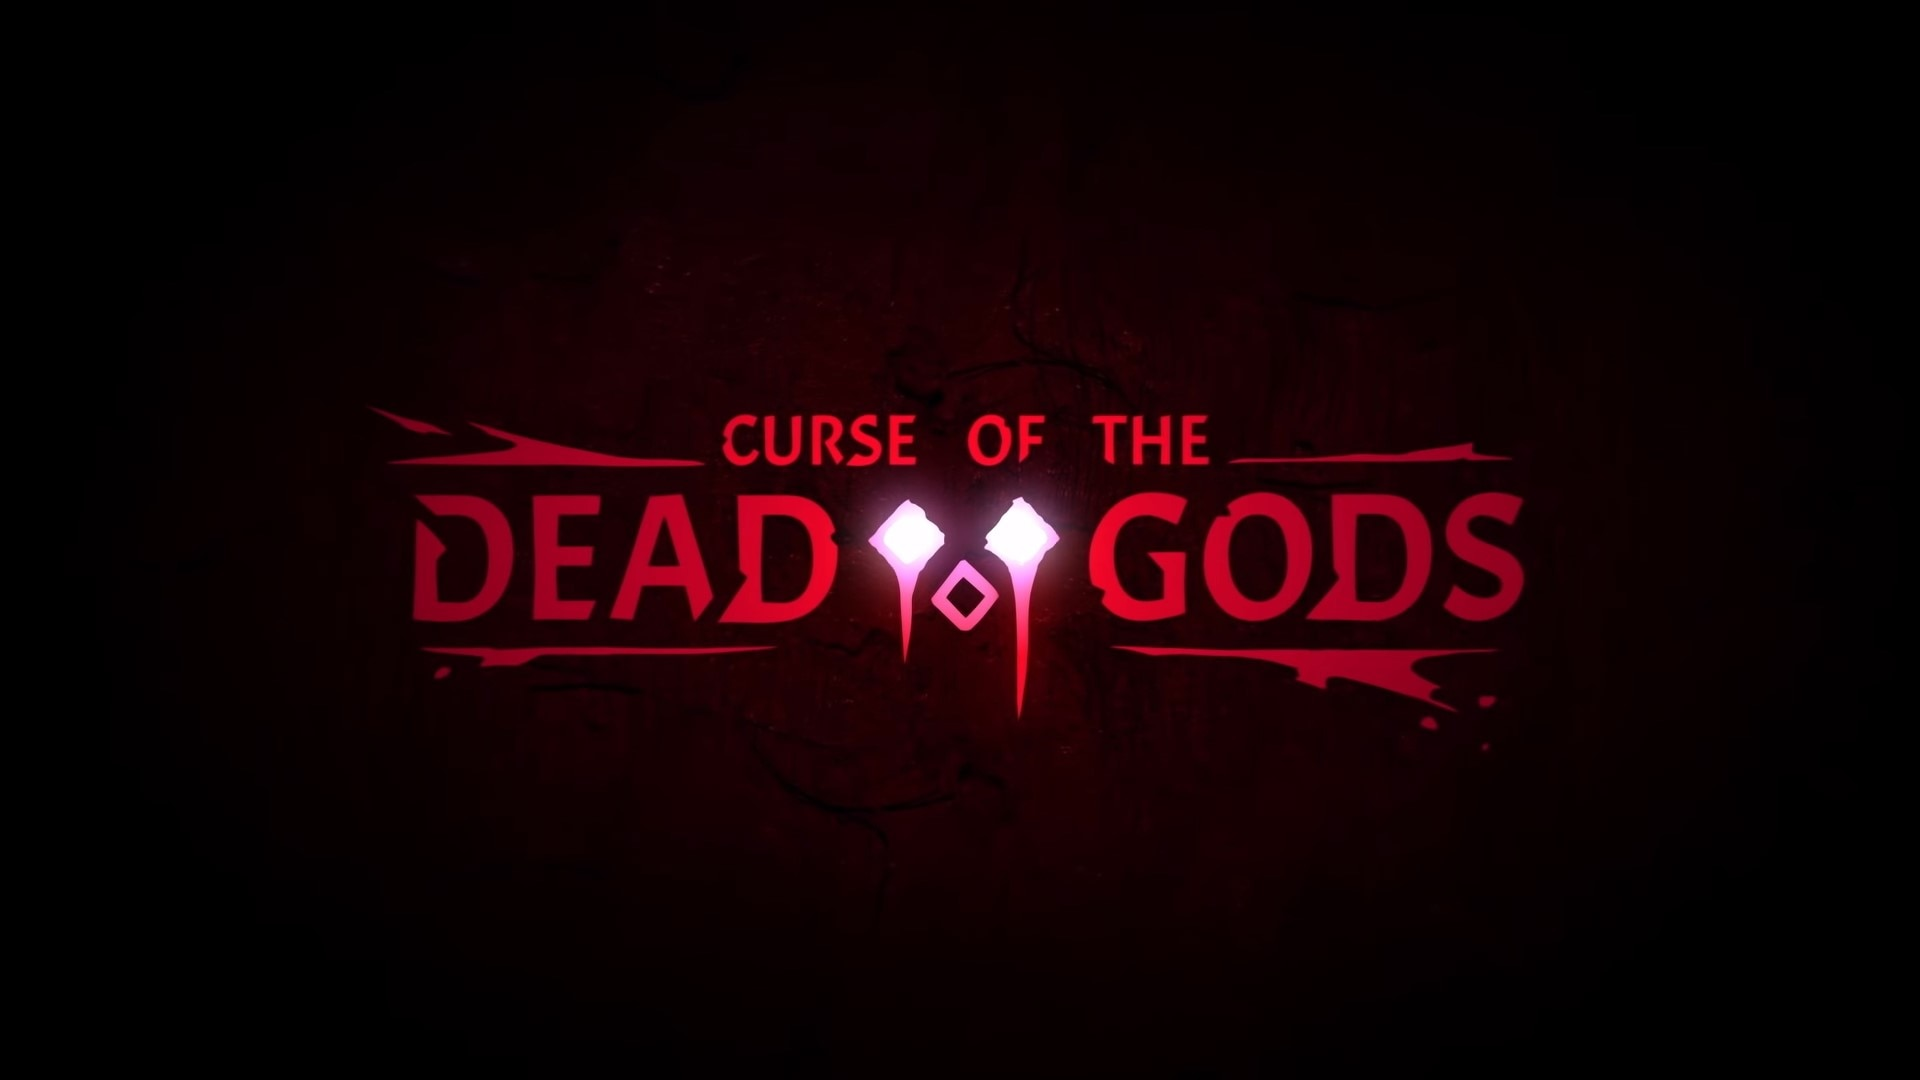 PAX EAST 2020 Curse of the Dead Gods Gameplay Overview Trailer 3 31 screenshot - CURSE OF THE DEAD GOD MIXES DIABLO WITH CONQUISTADORS